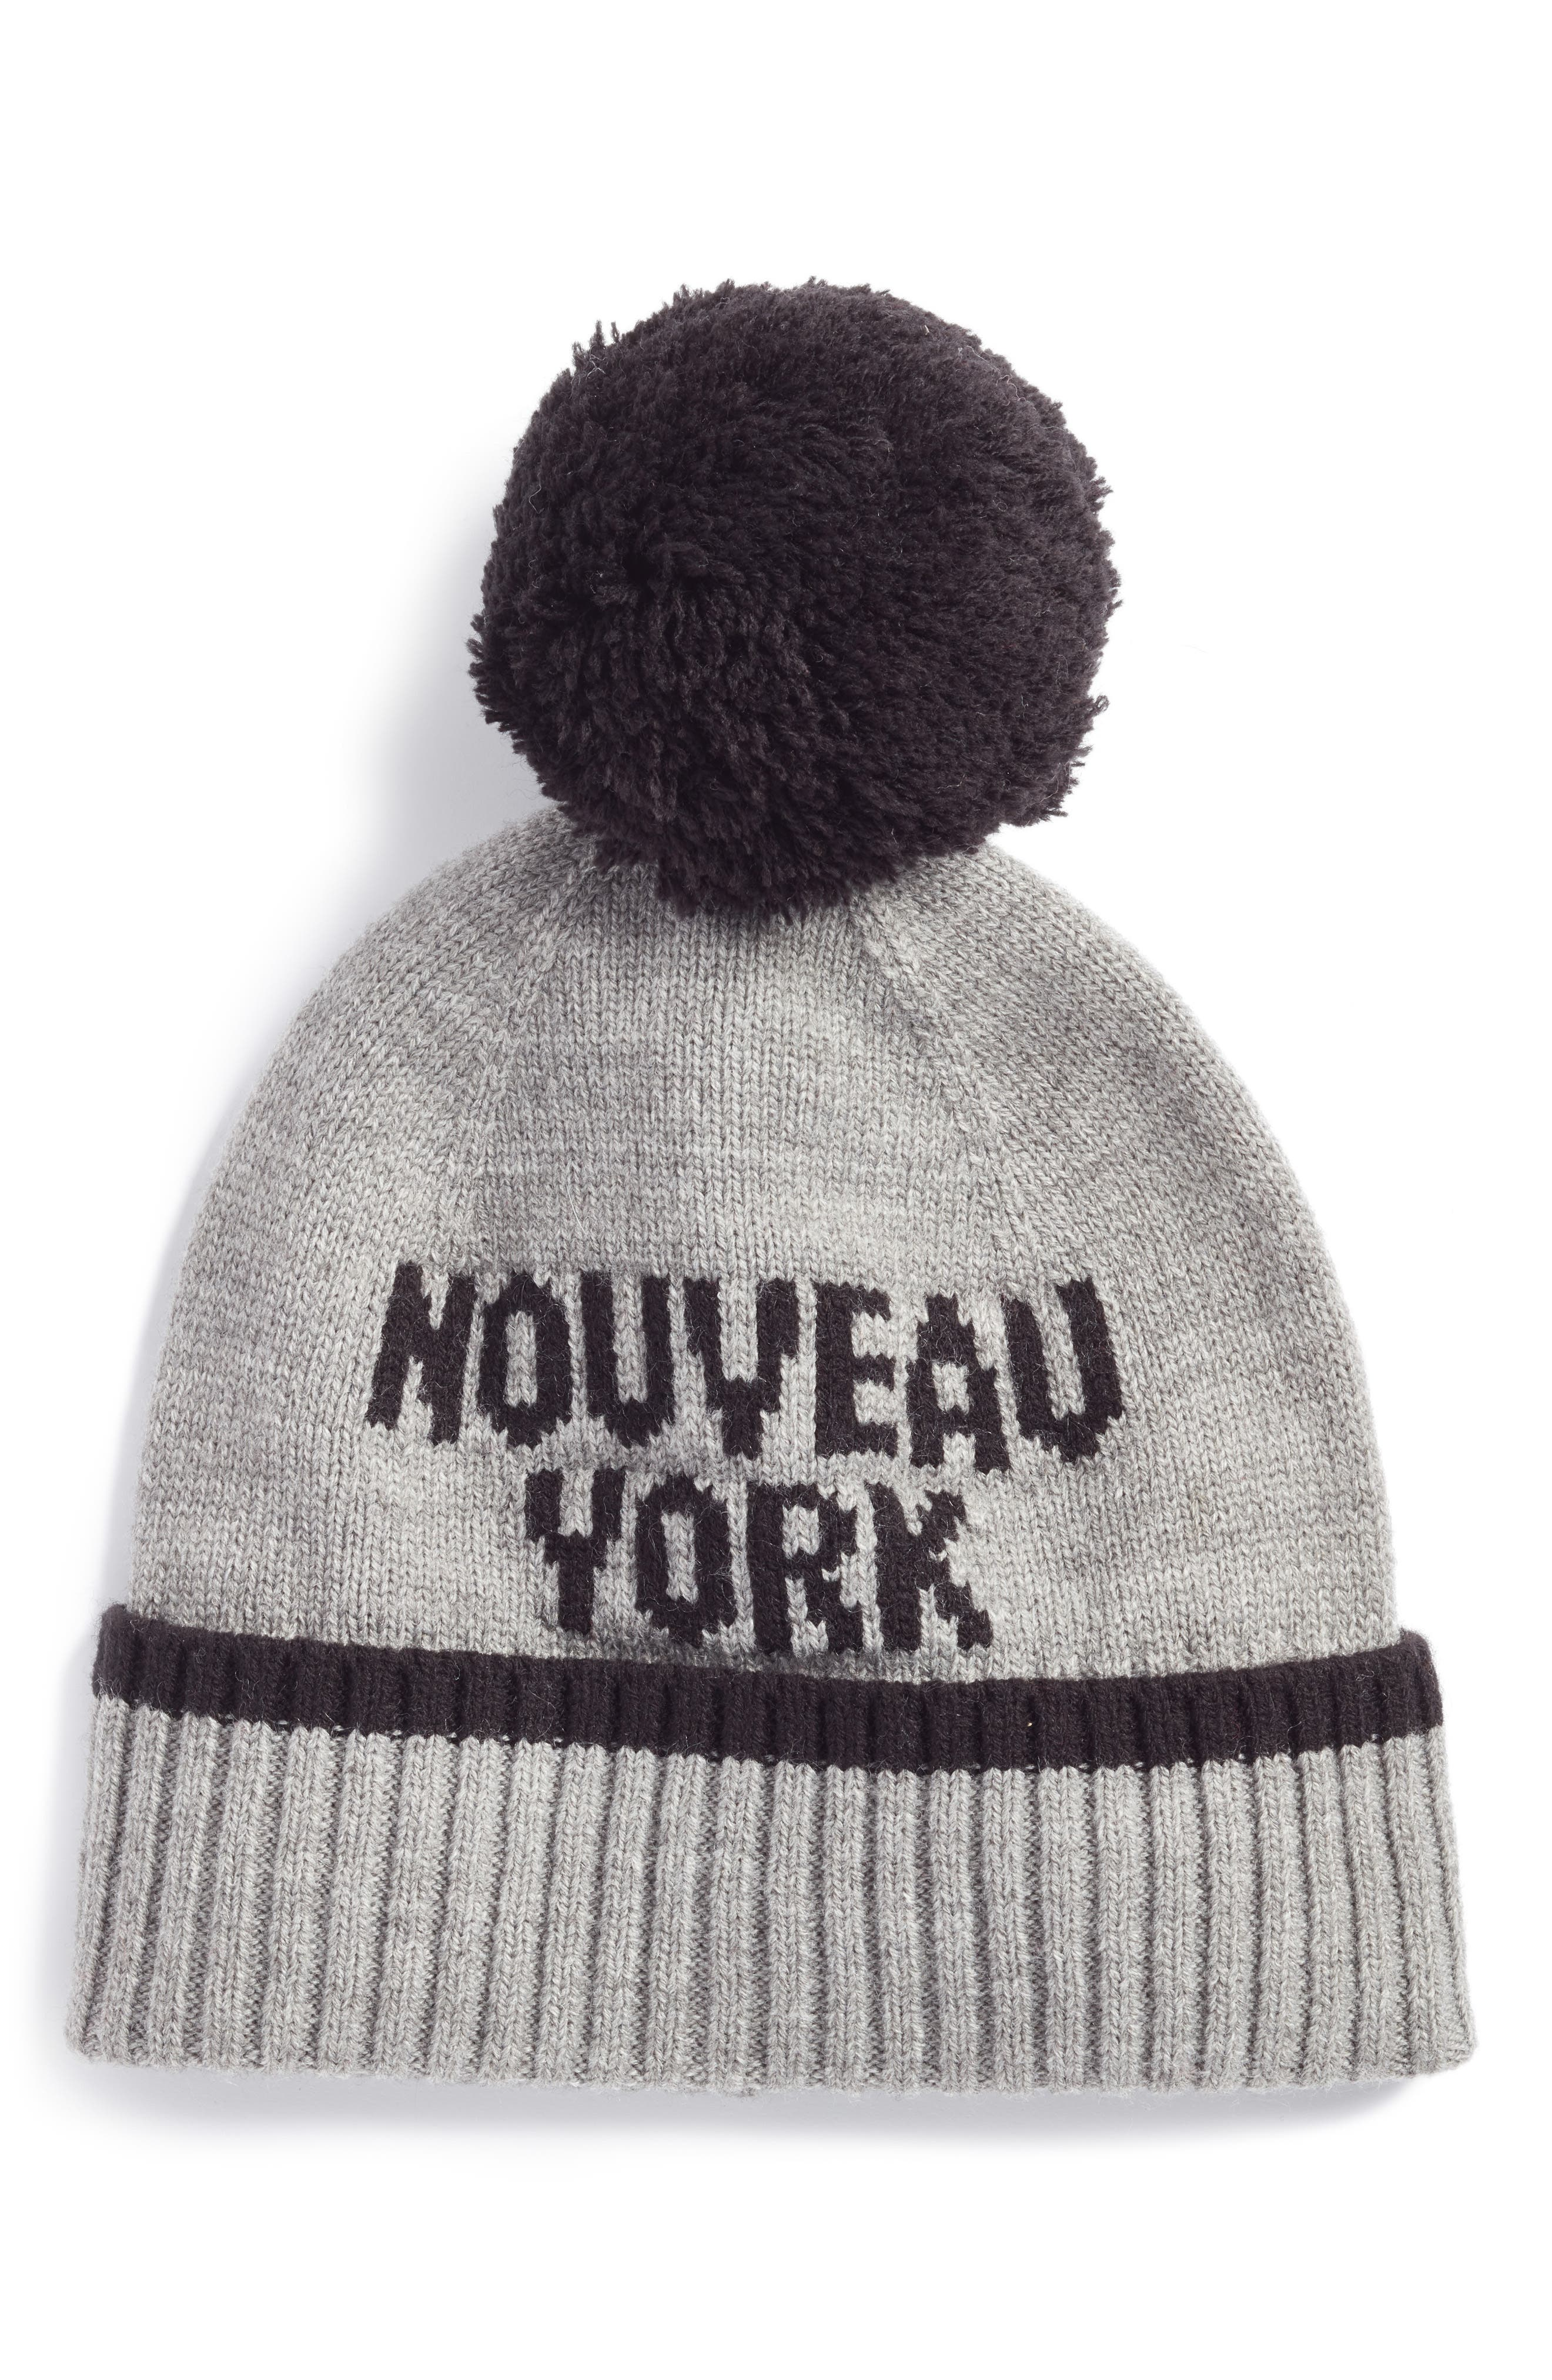 nouveau york pom beanie,                         Main,                         color, Heather Gray/ Black